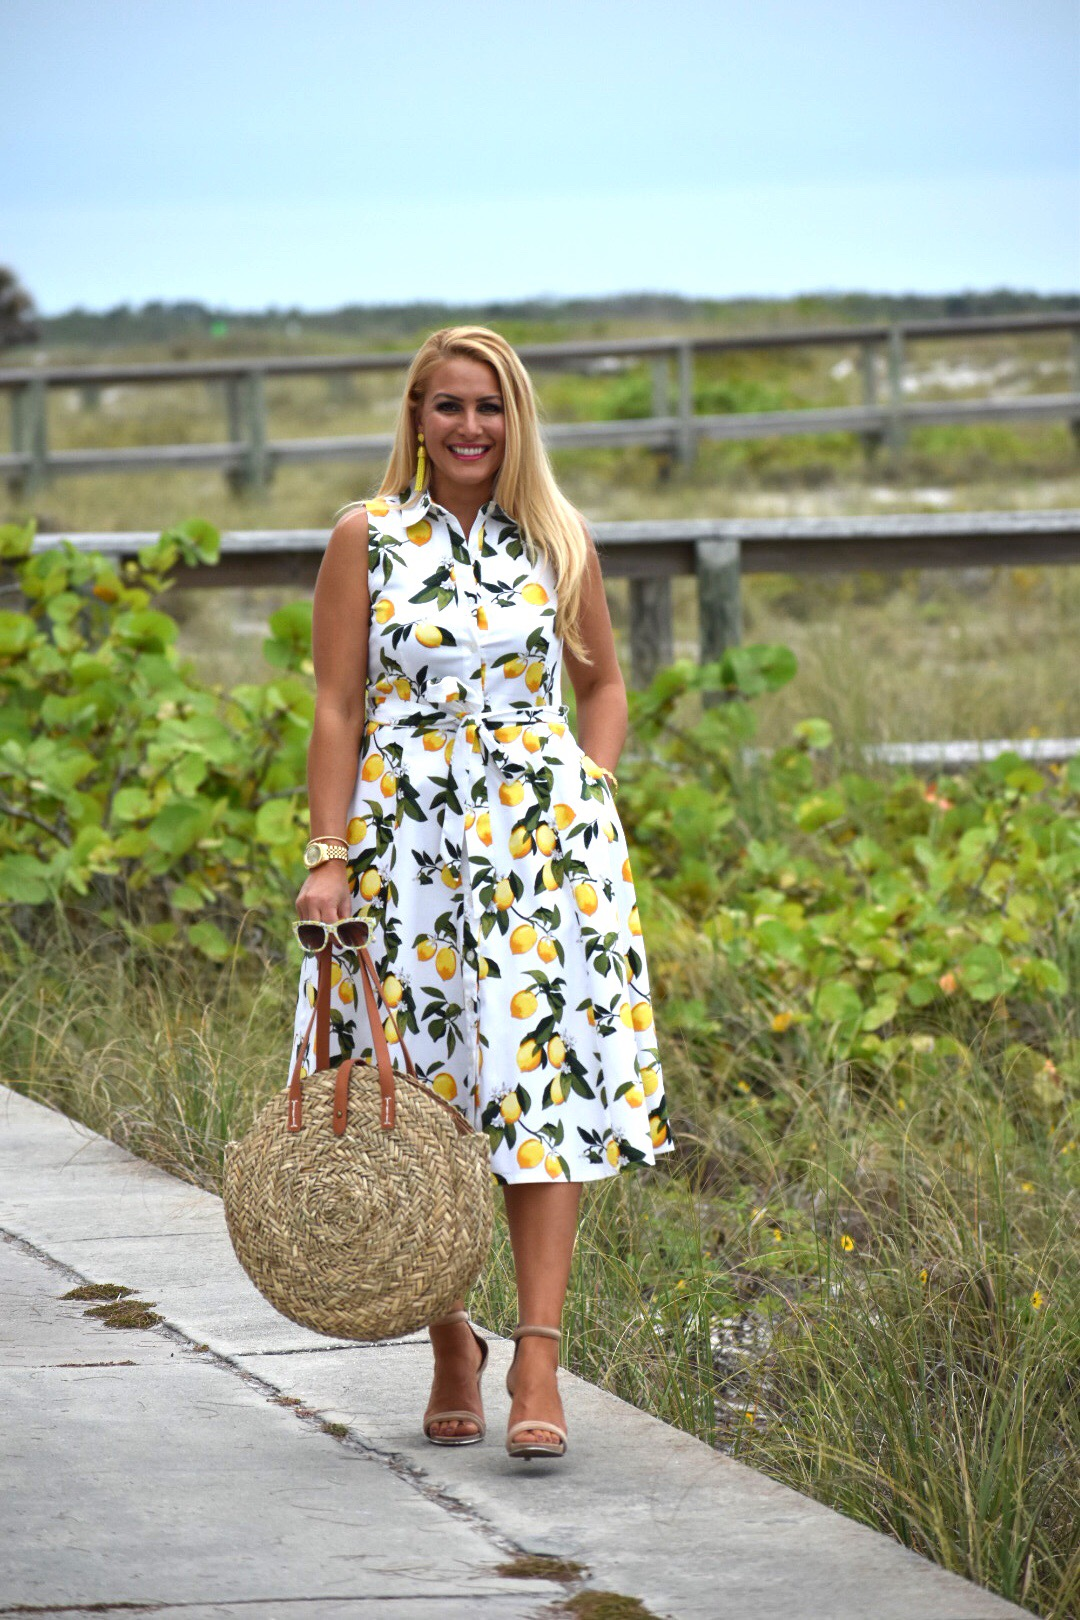 Lemon Print Dress, Midi dress, Chetta B Dress, Chetta B Lemon Dress, Tassel Earrings, Nude Heels, Round Straw Bag